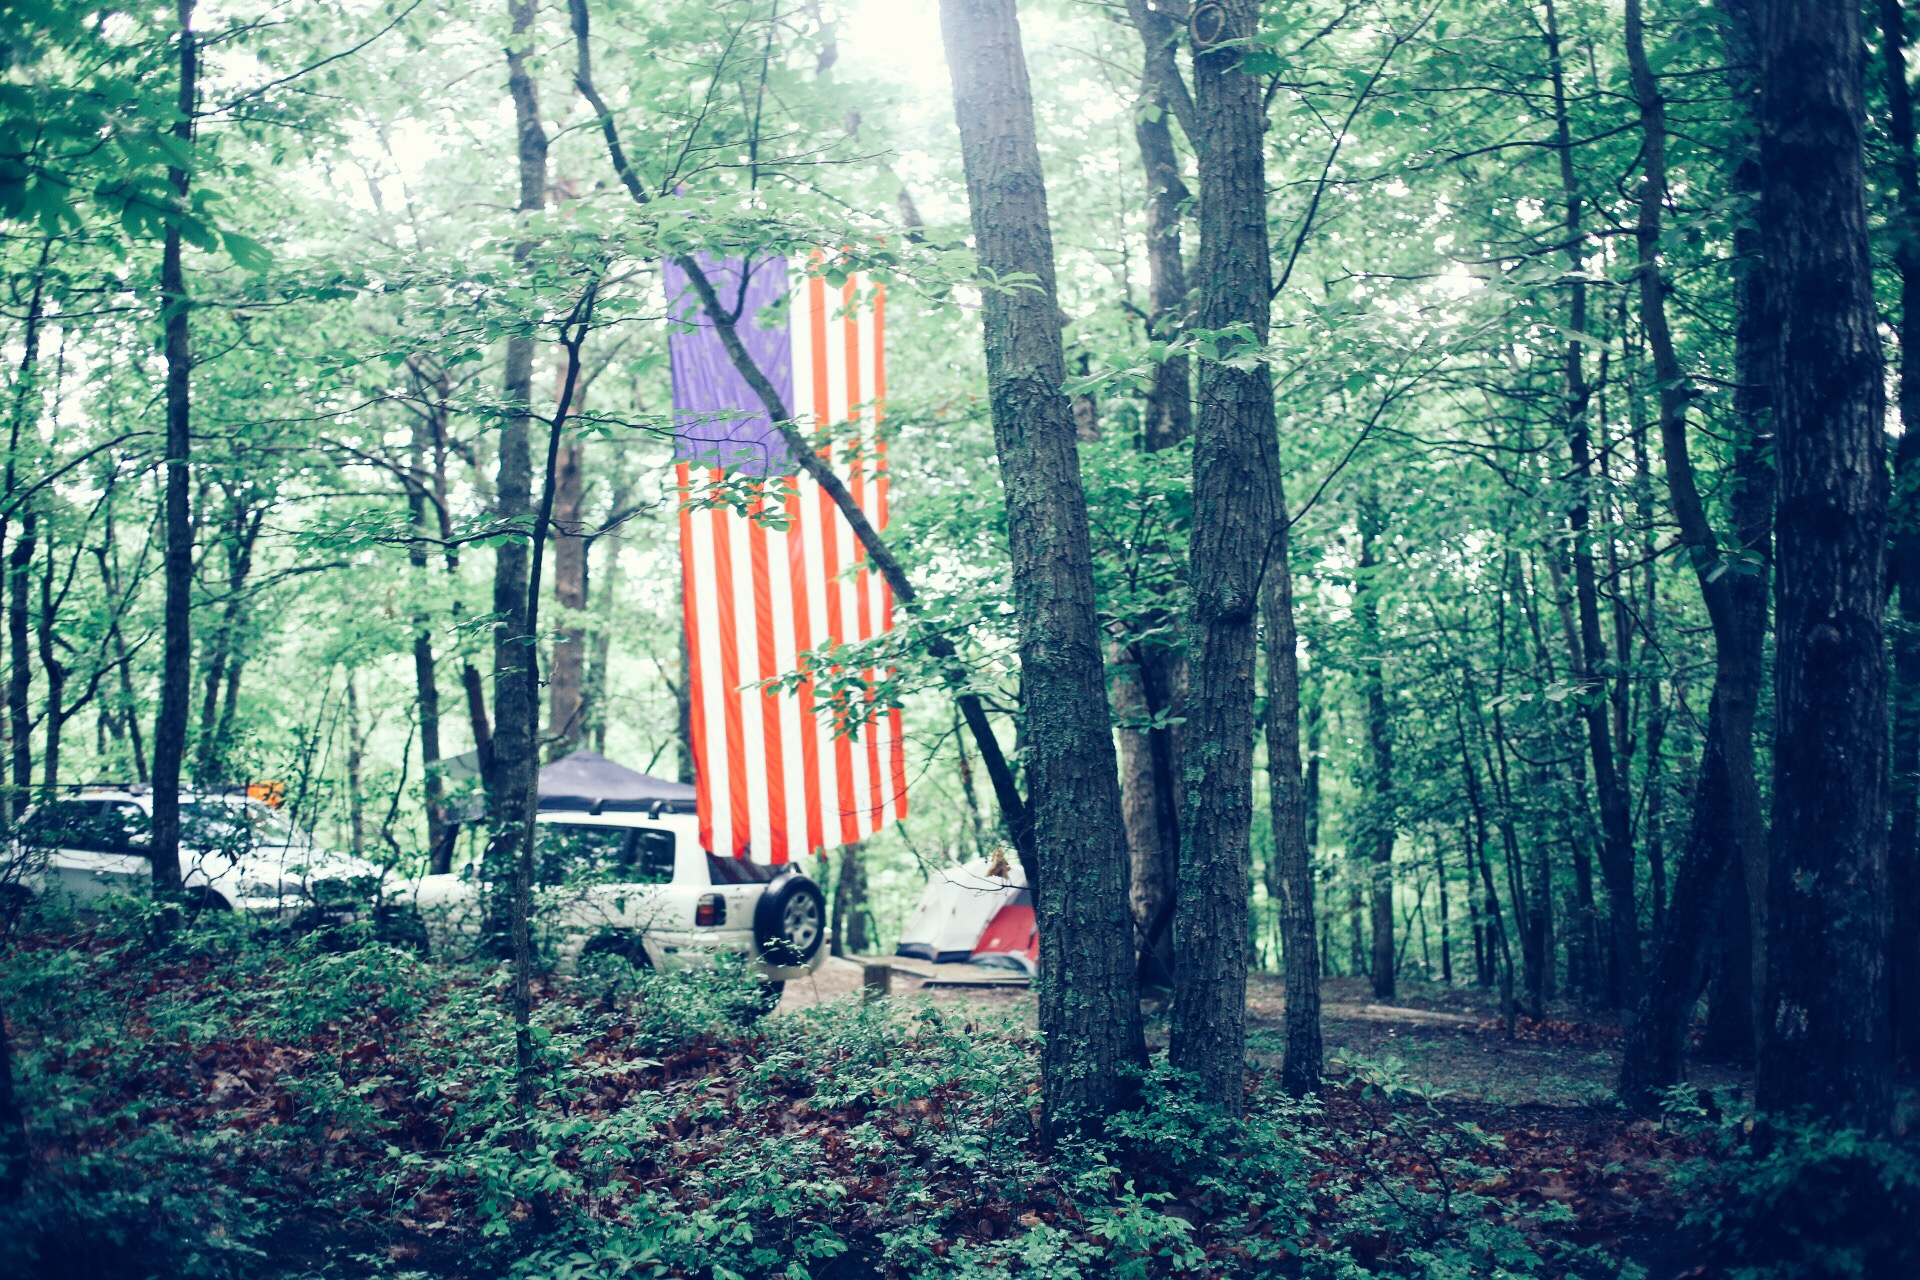 A festivecamp siteonthe Forth of July.